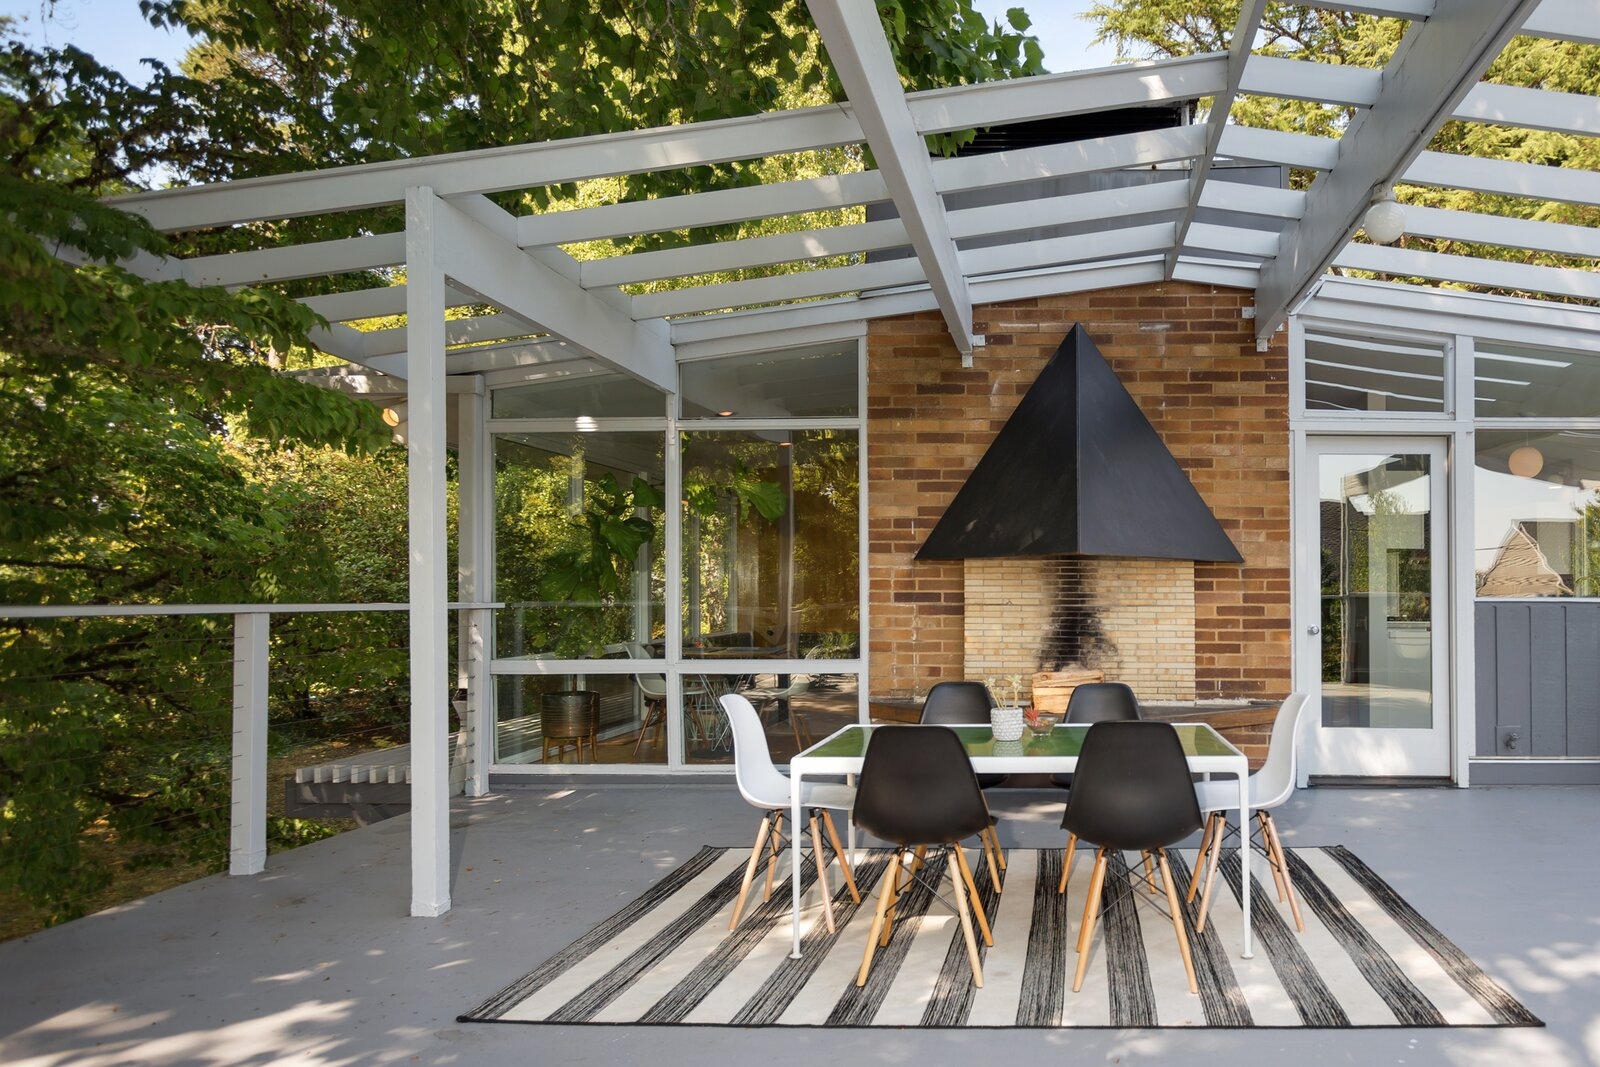 Rooftop Patio of Smith-Gerst Residence by Frank Shell